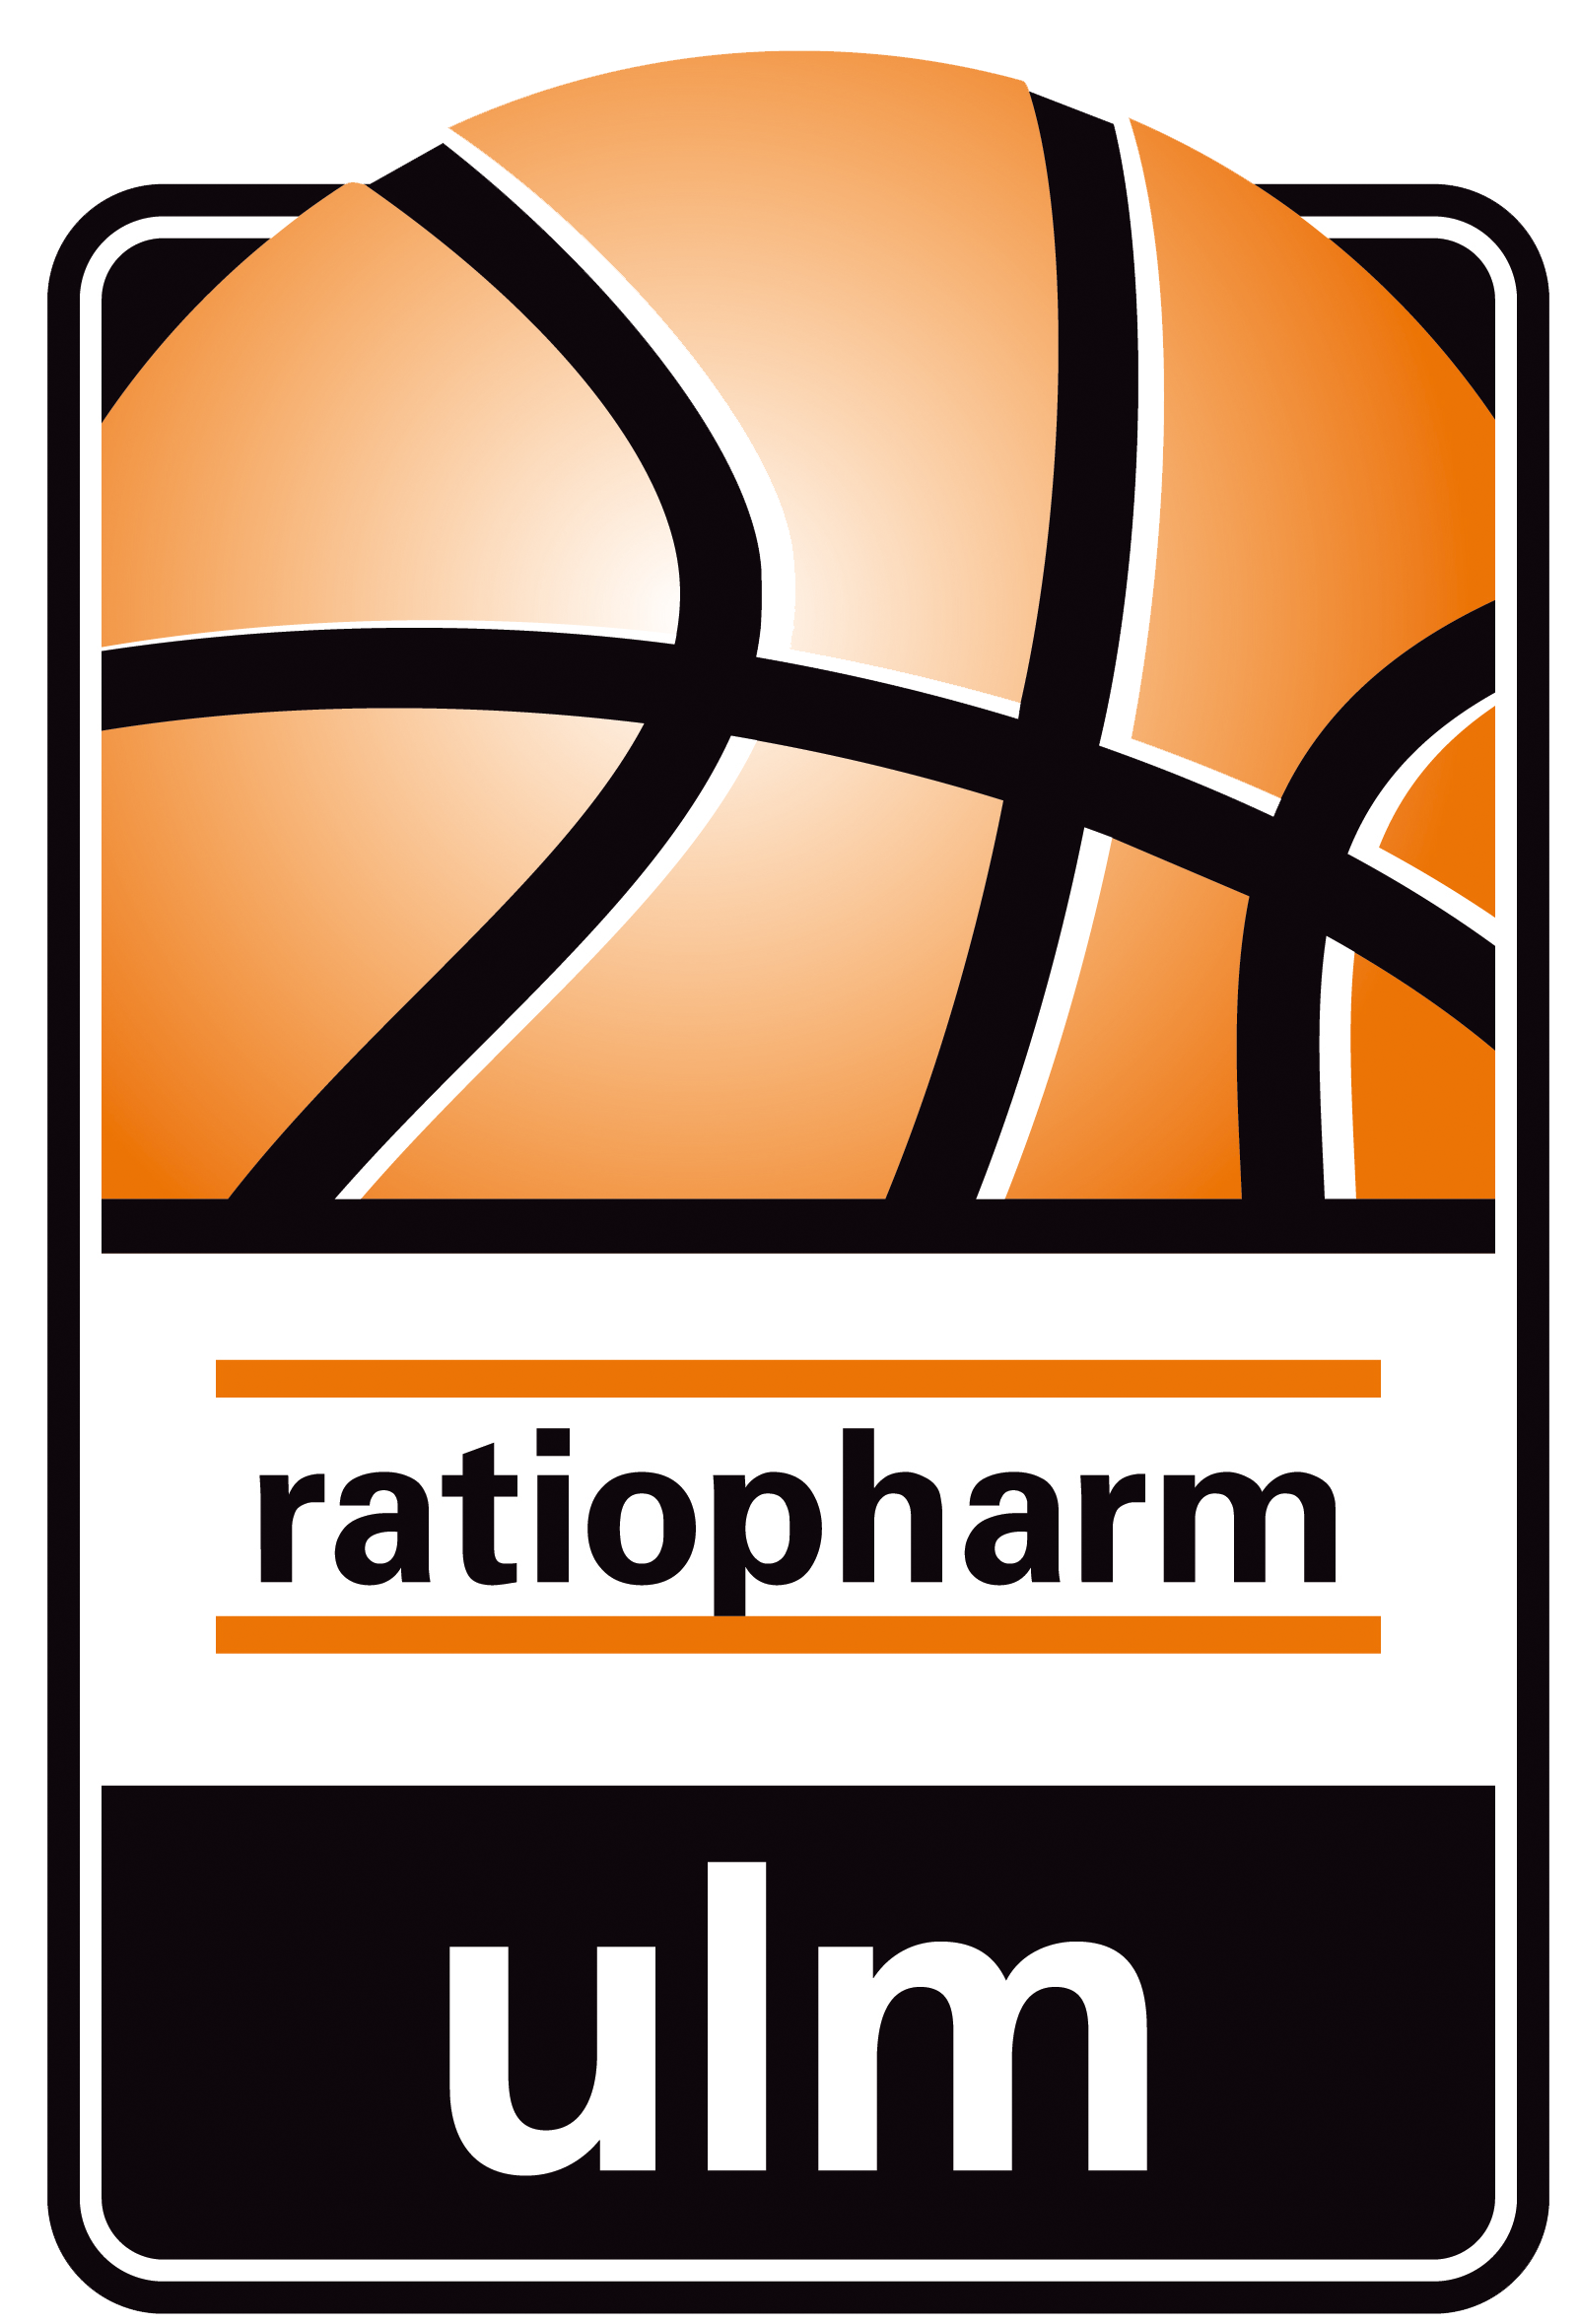 ratiopharm Ulm vs. Bonn